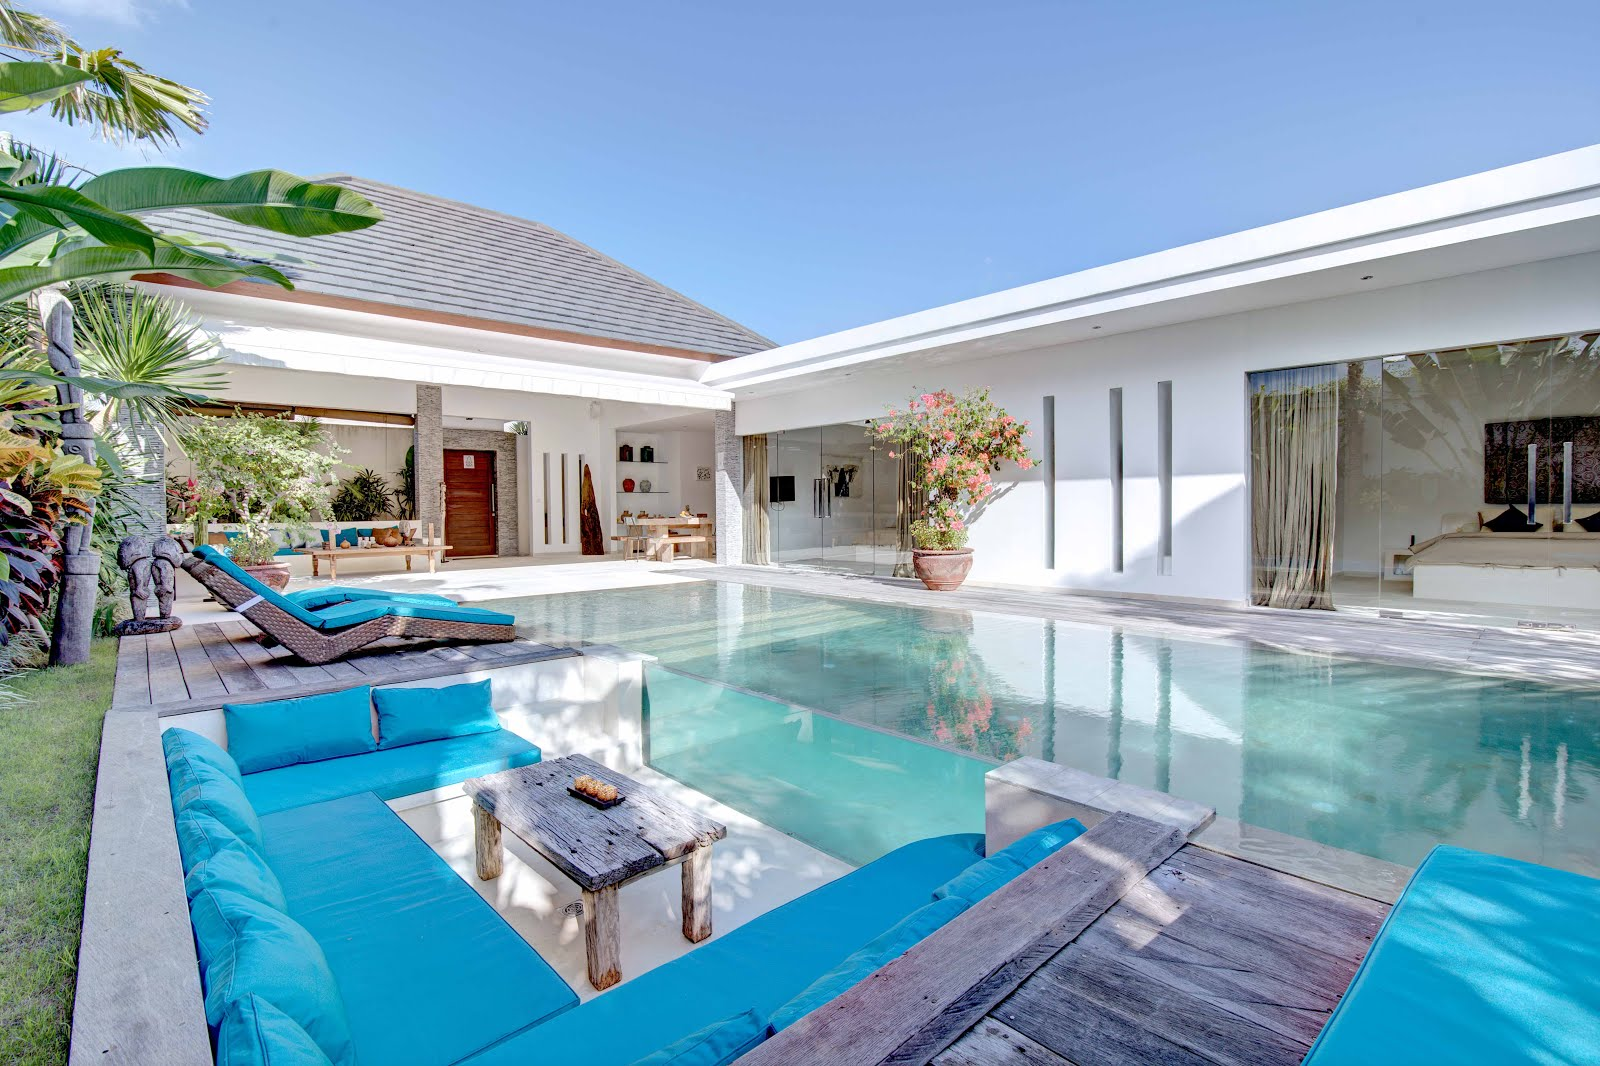 FOR RENT VILLA BALI click here